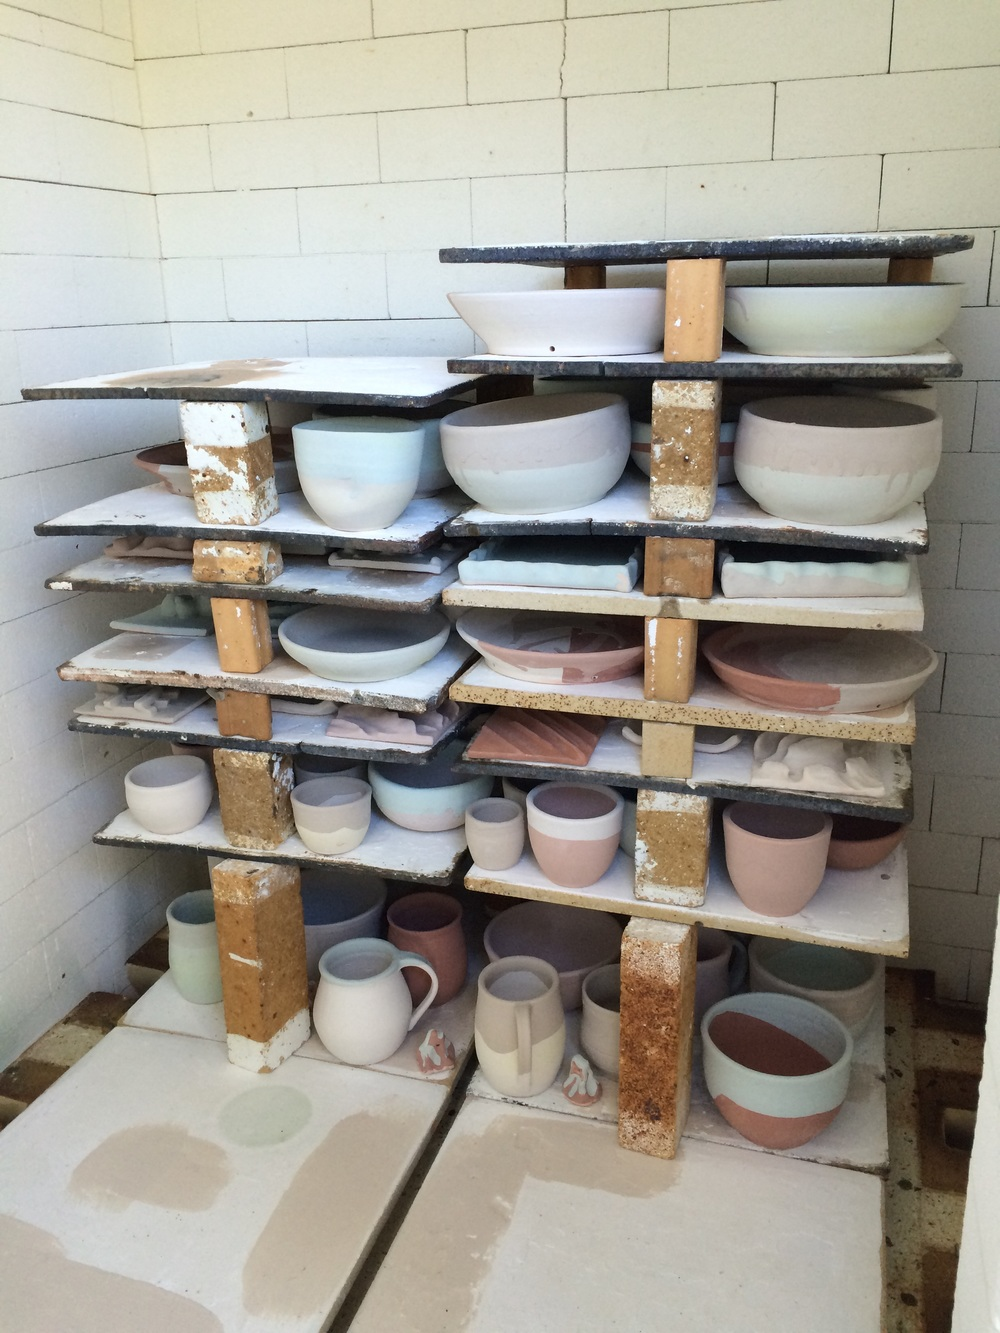 Partially loaded kiln